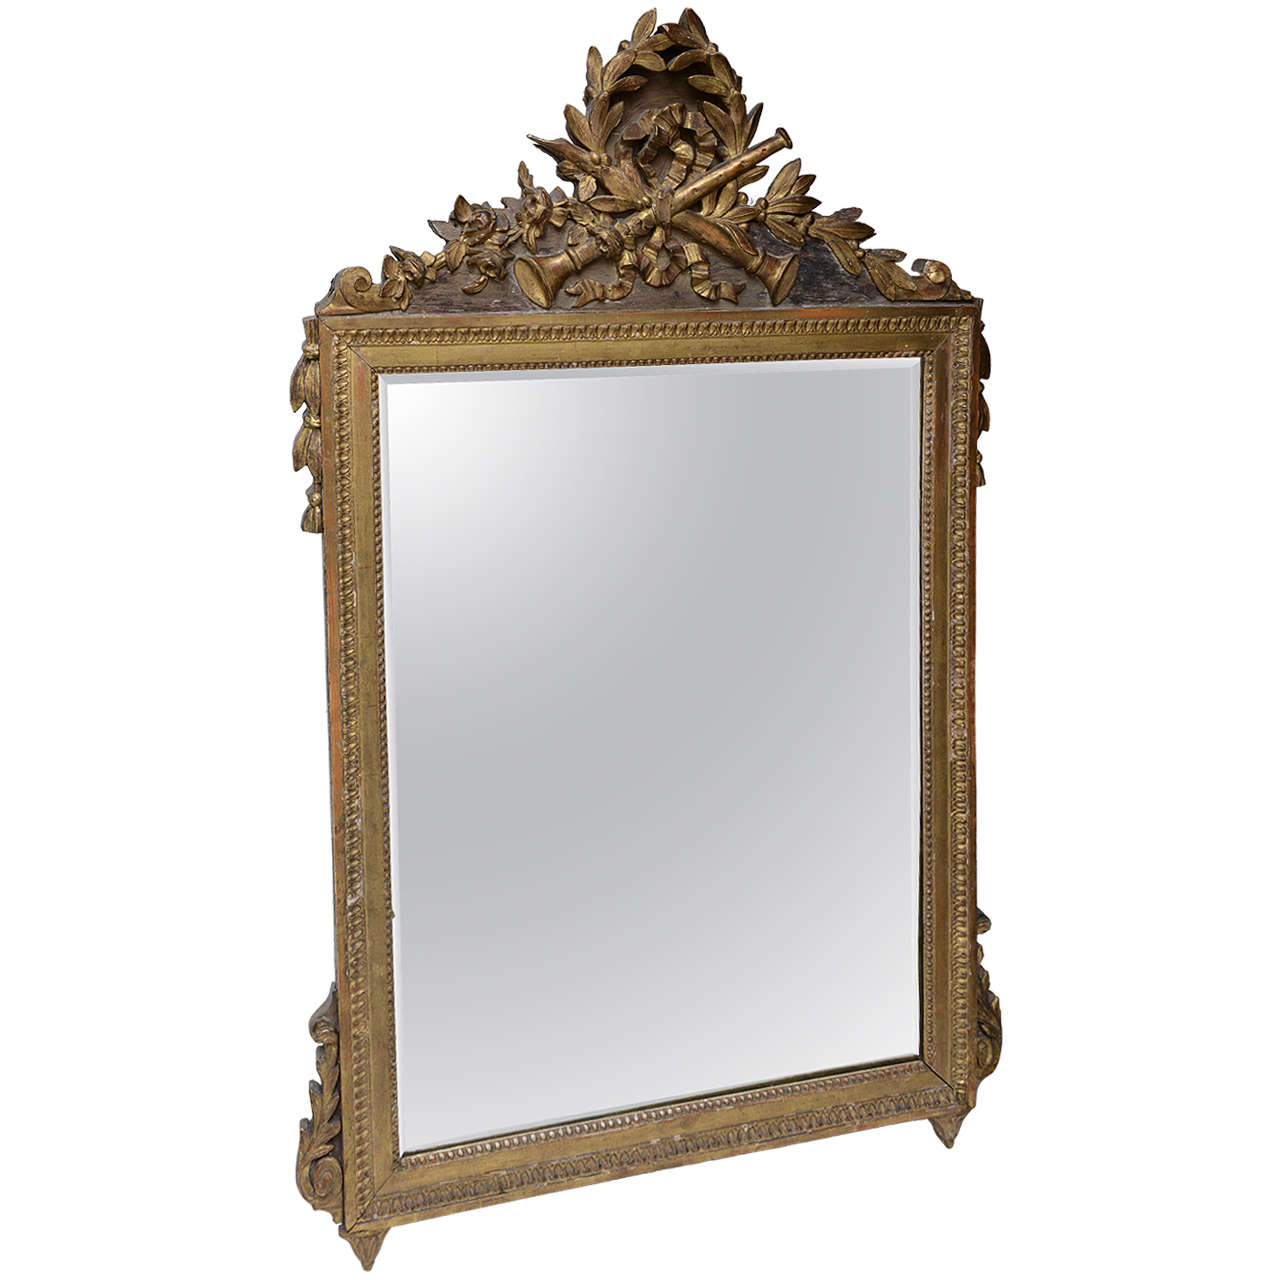 Louis XVI Neoclassical Giltwood Mirror For Sale